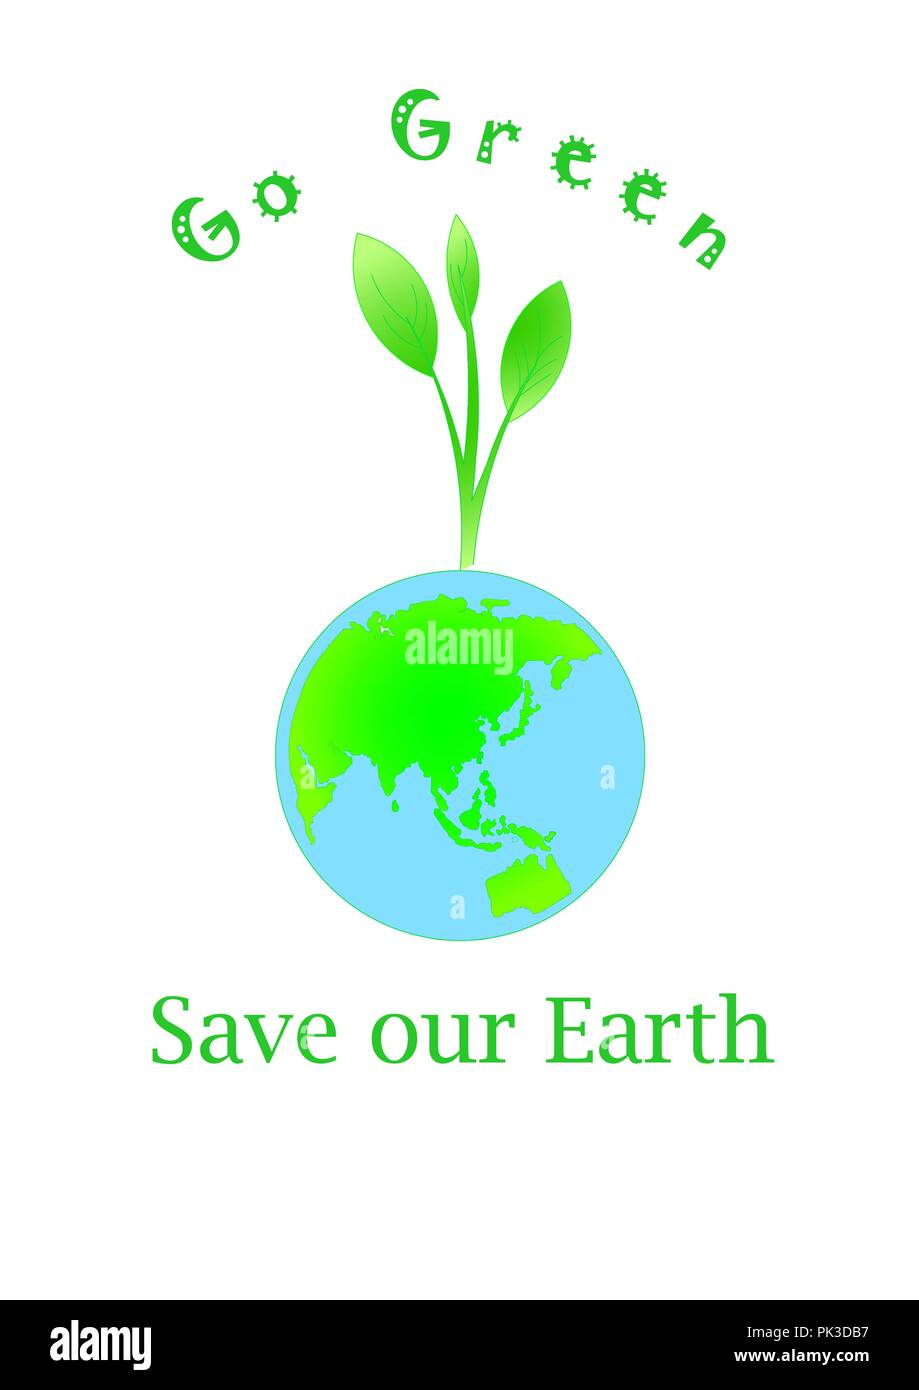 Go Green Save Our Earth Stock Photo Alamy